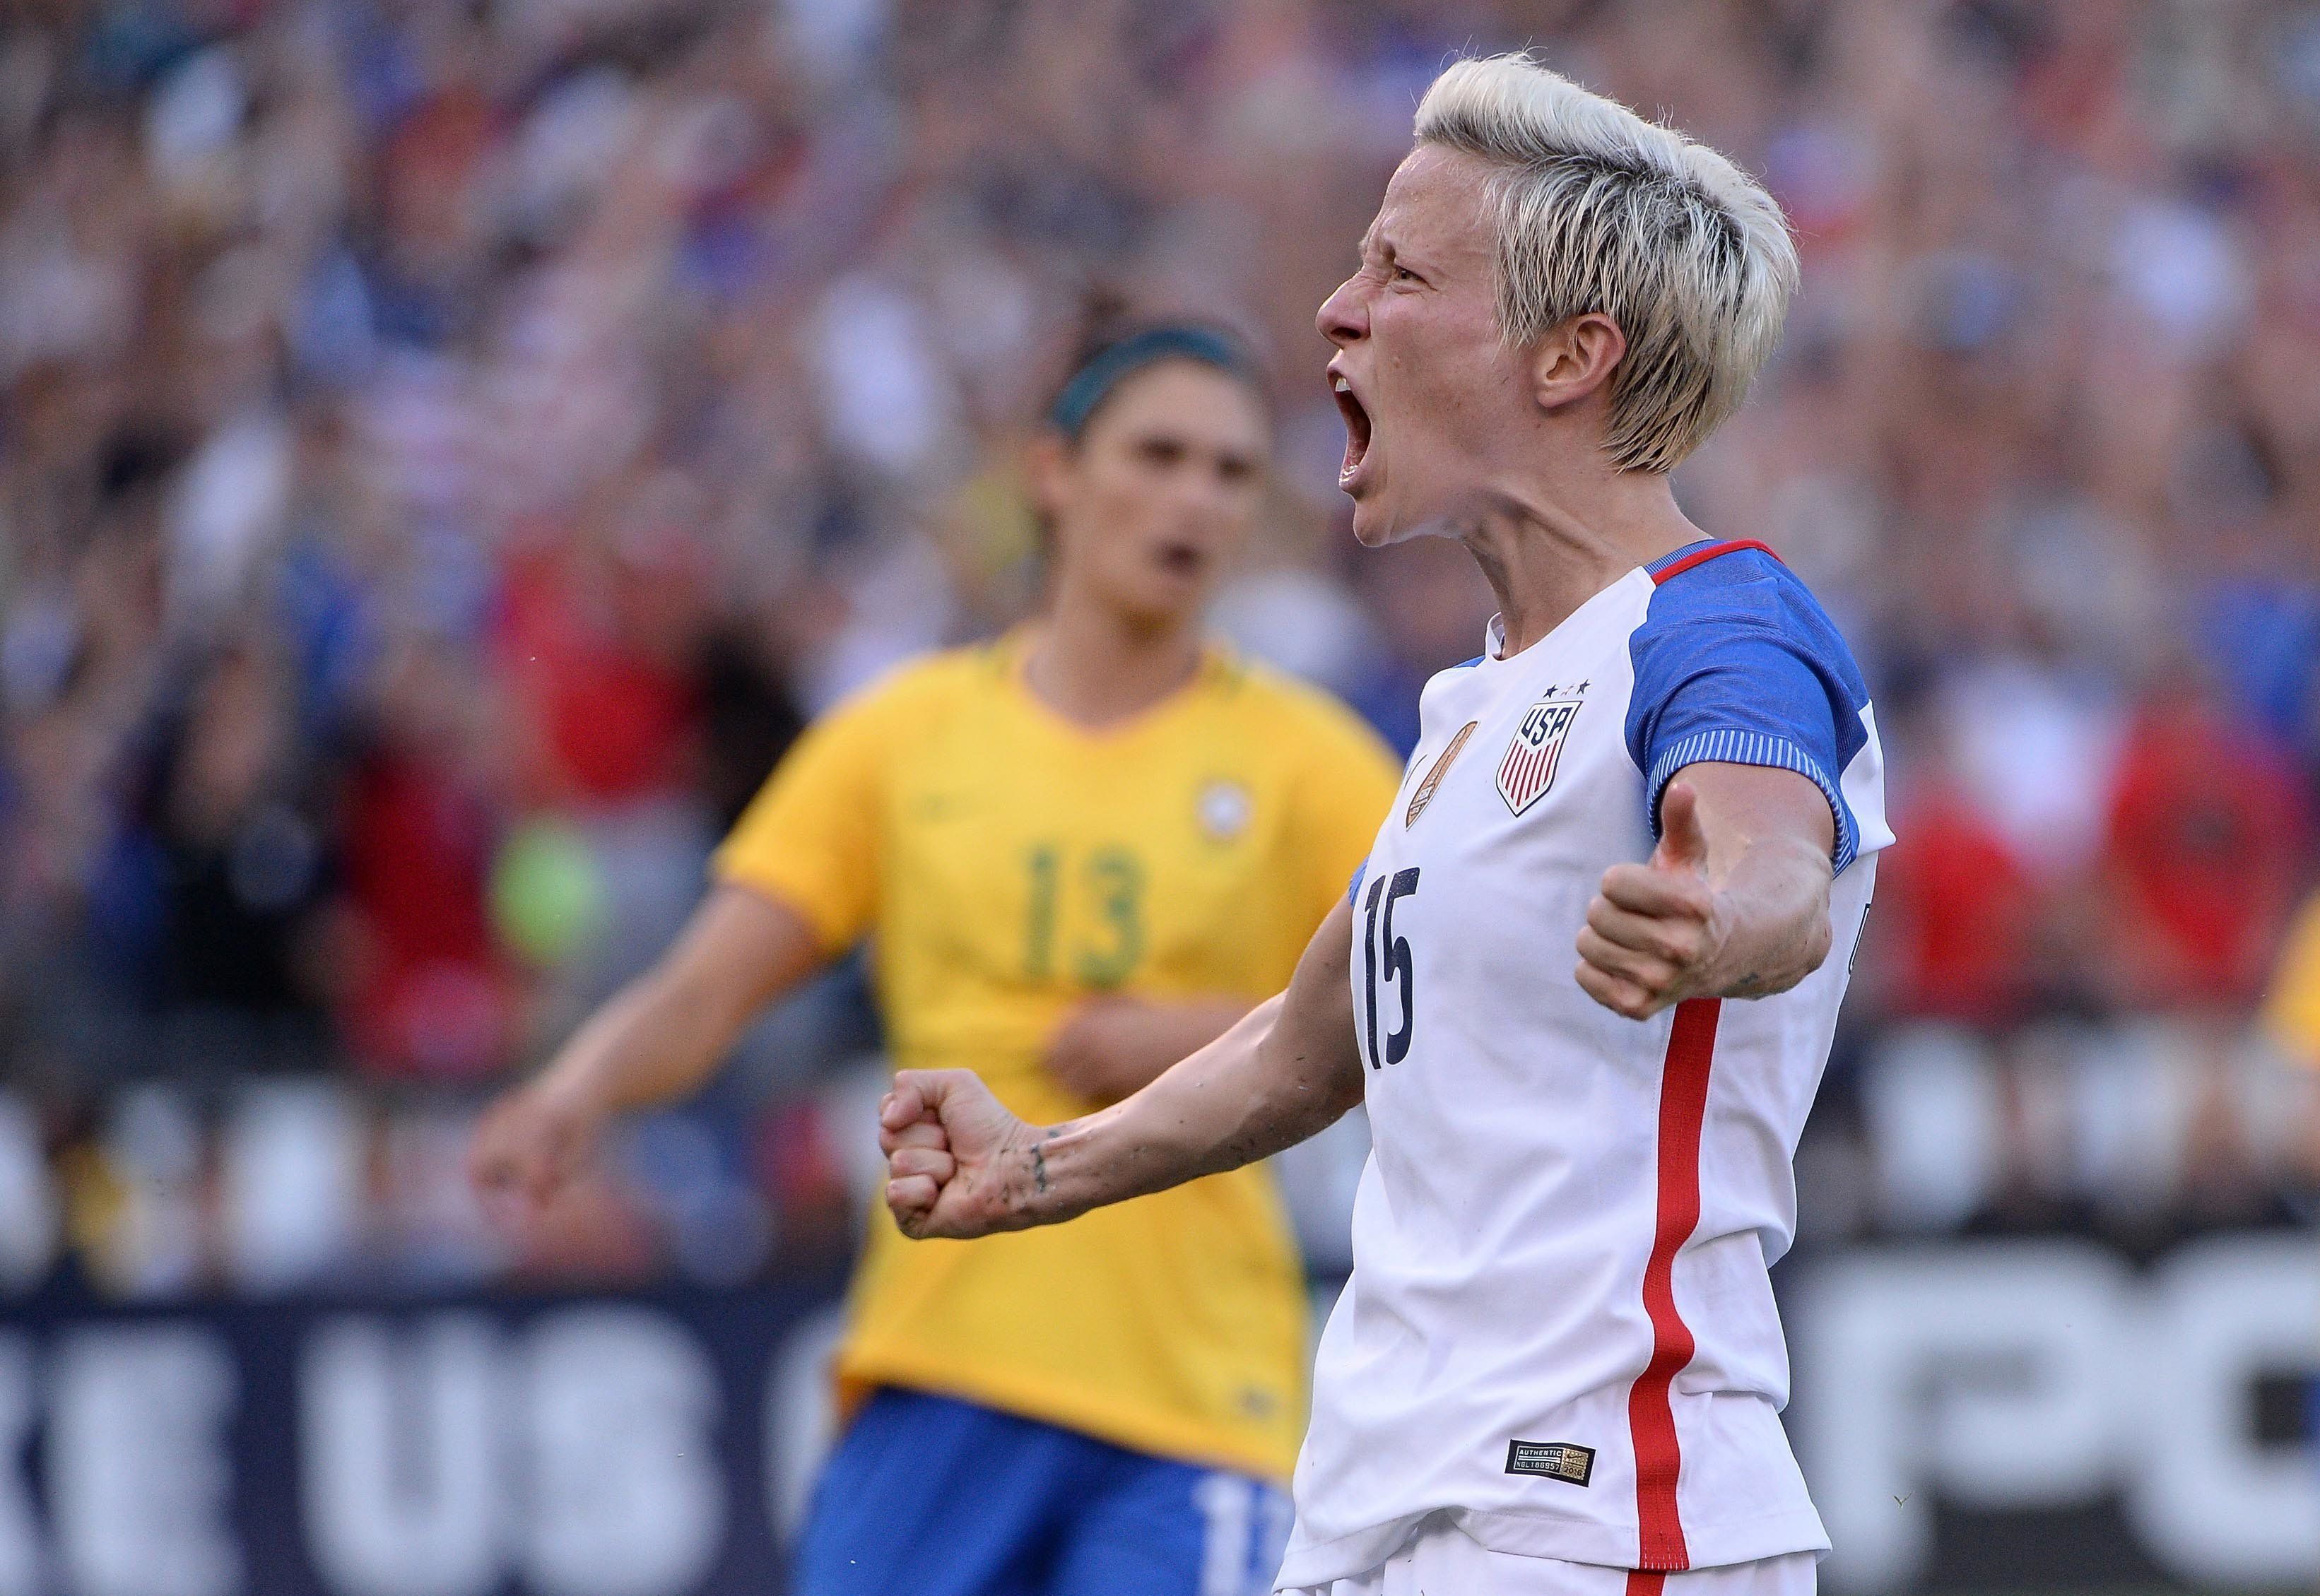 Megan Rapinoe reacts after scoring a goal against Brazil in a match last year